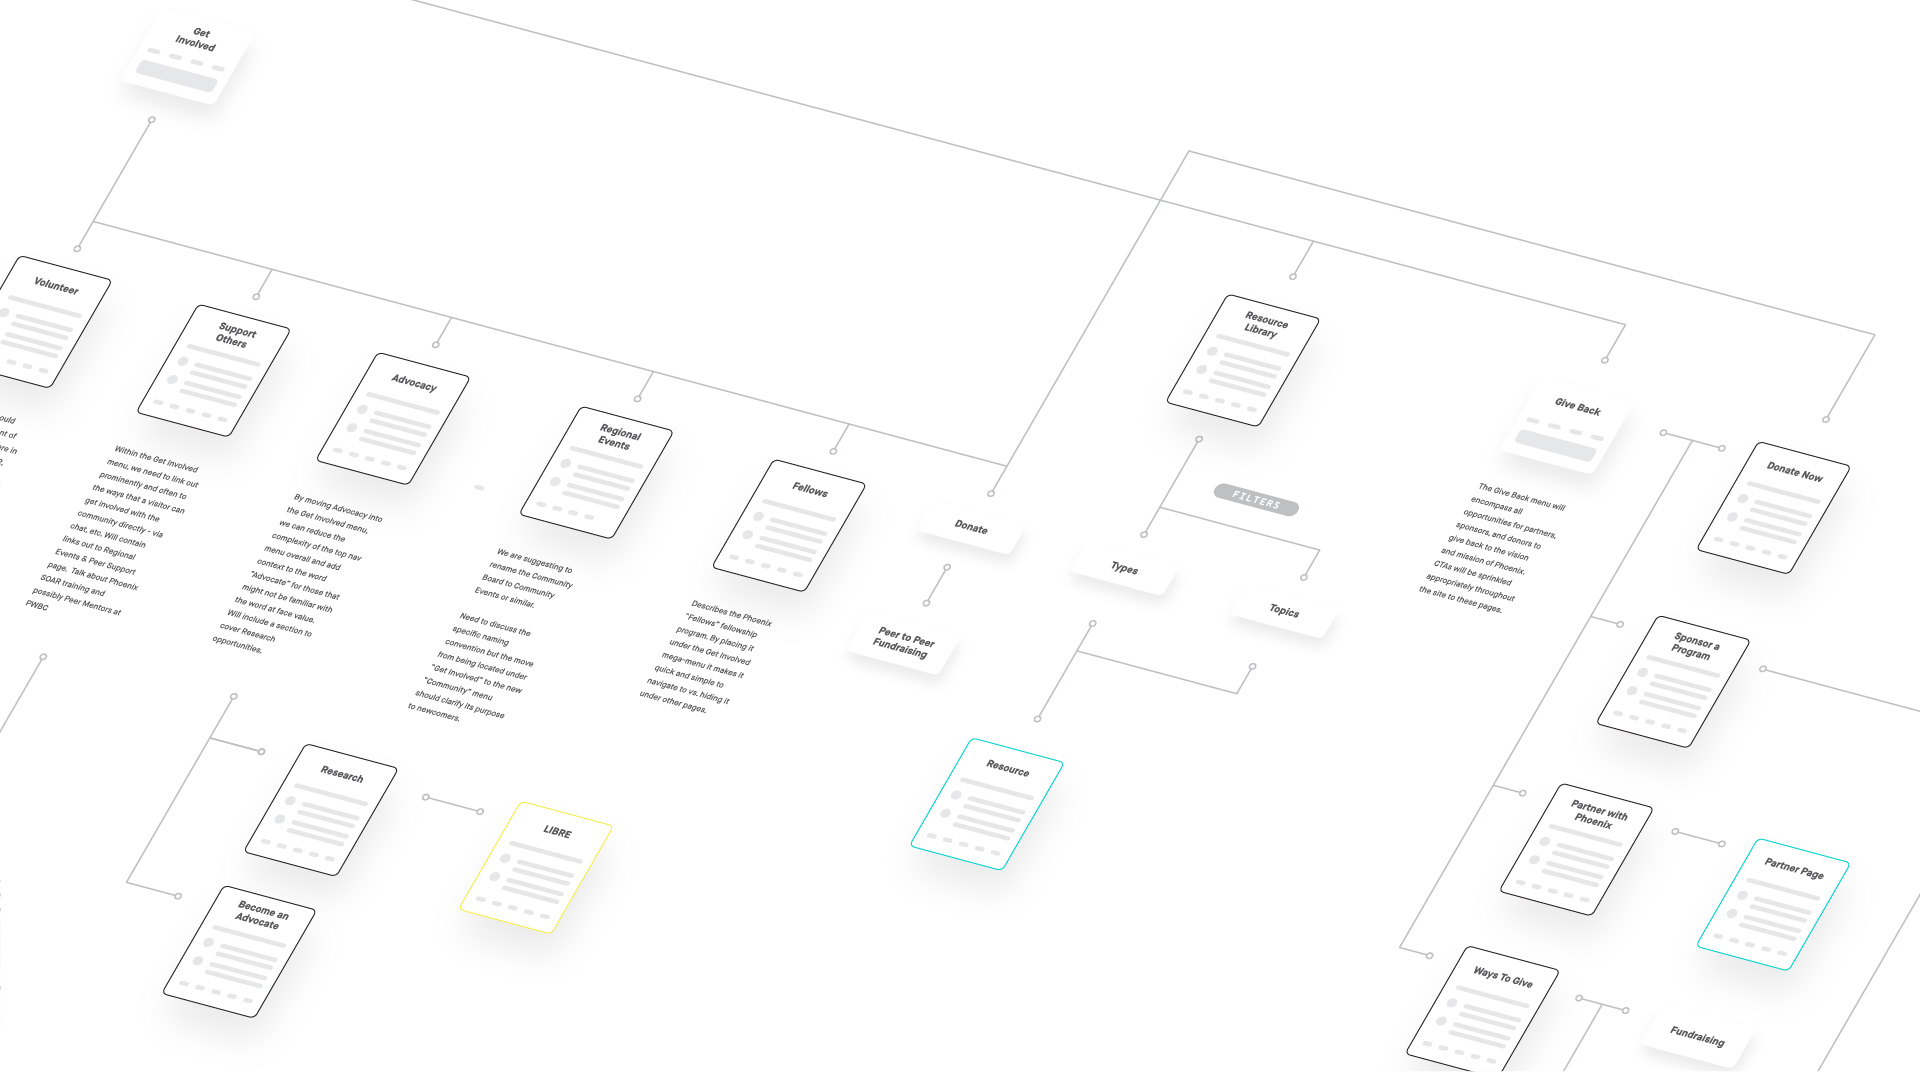 The user experience was designed through sitemap and wireframe design phases